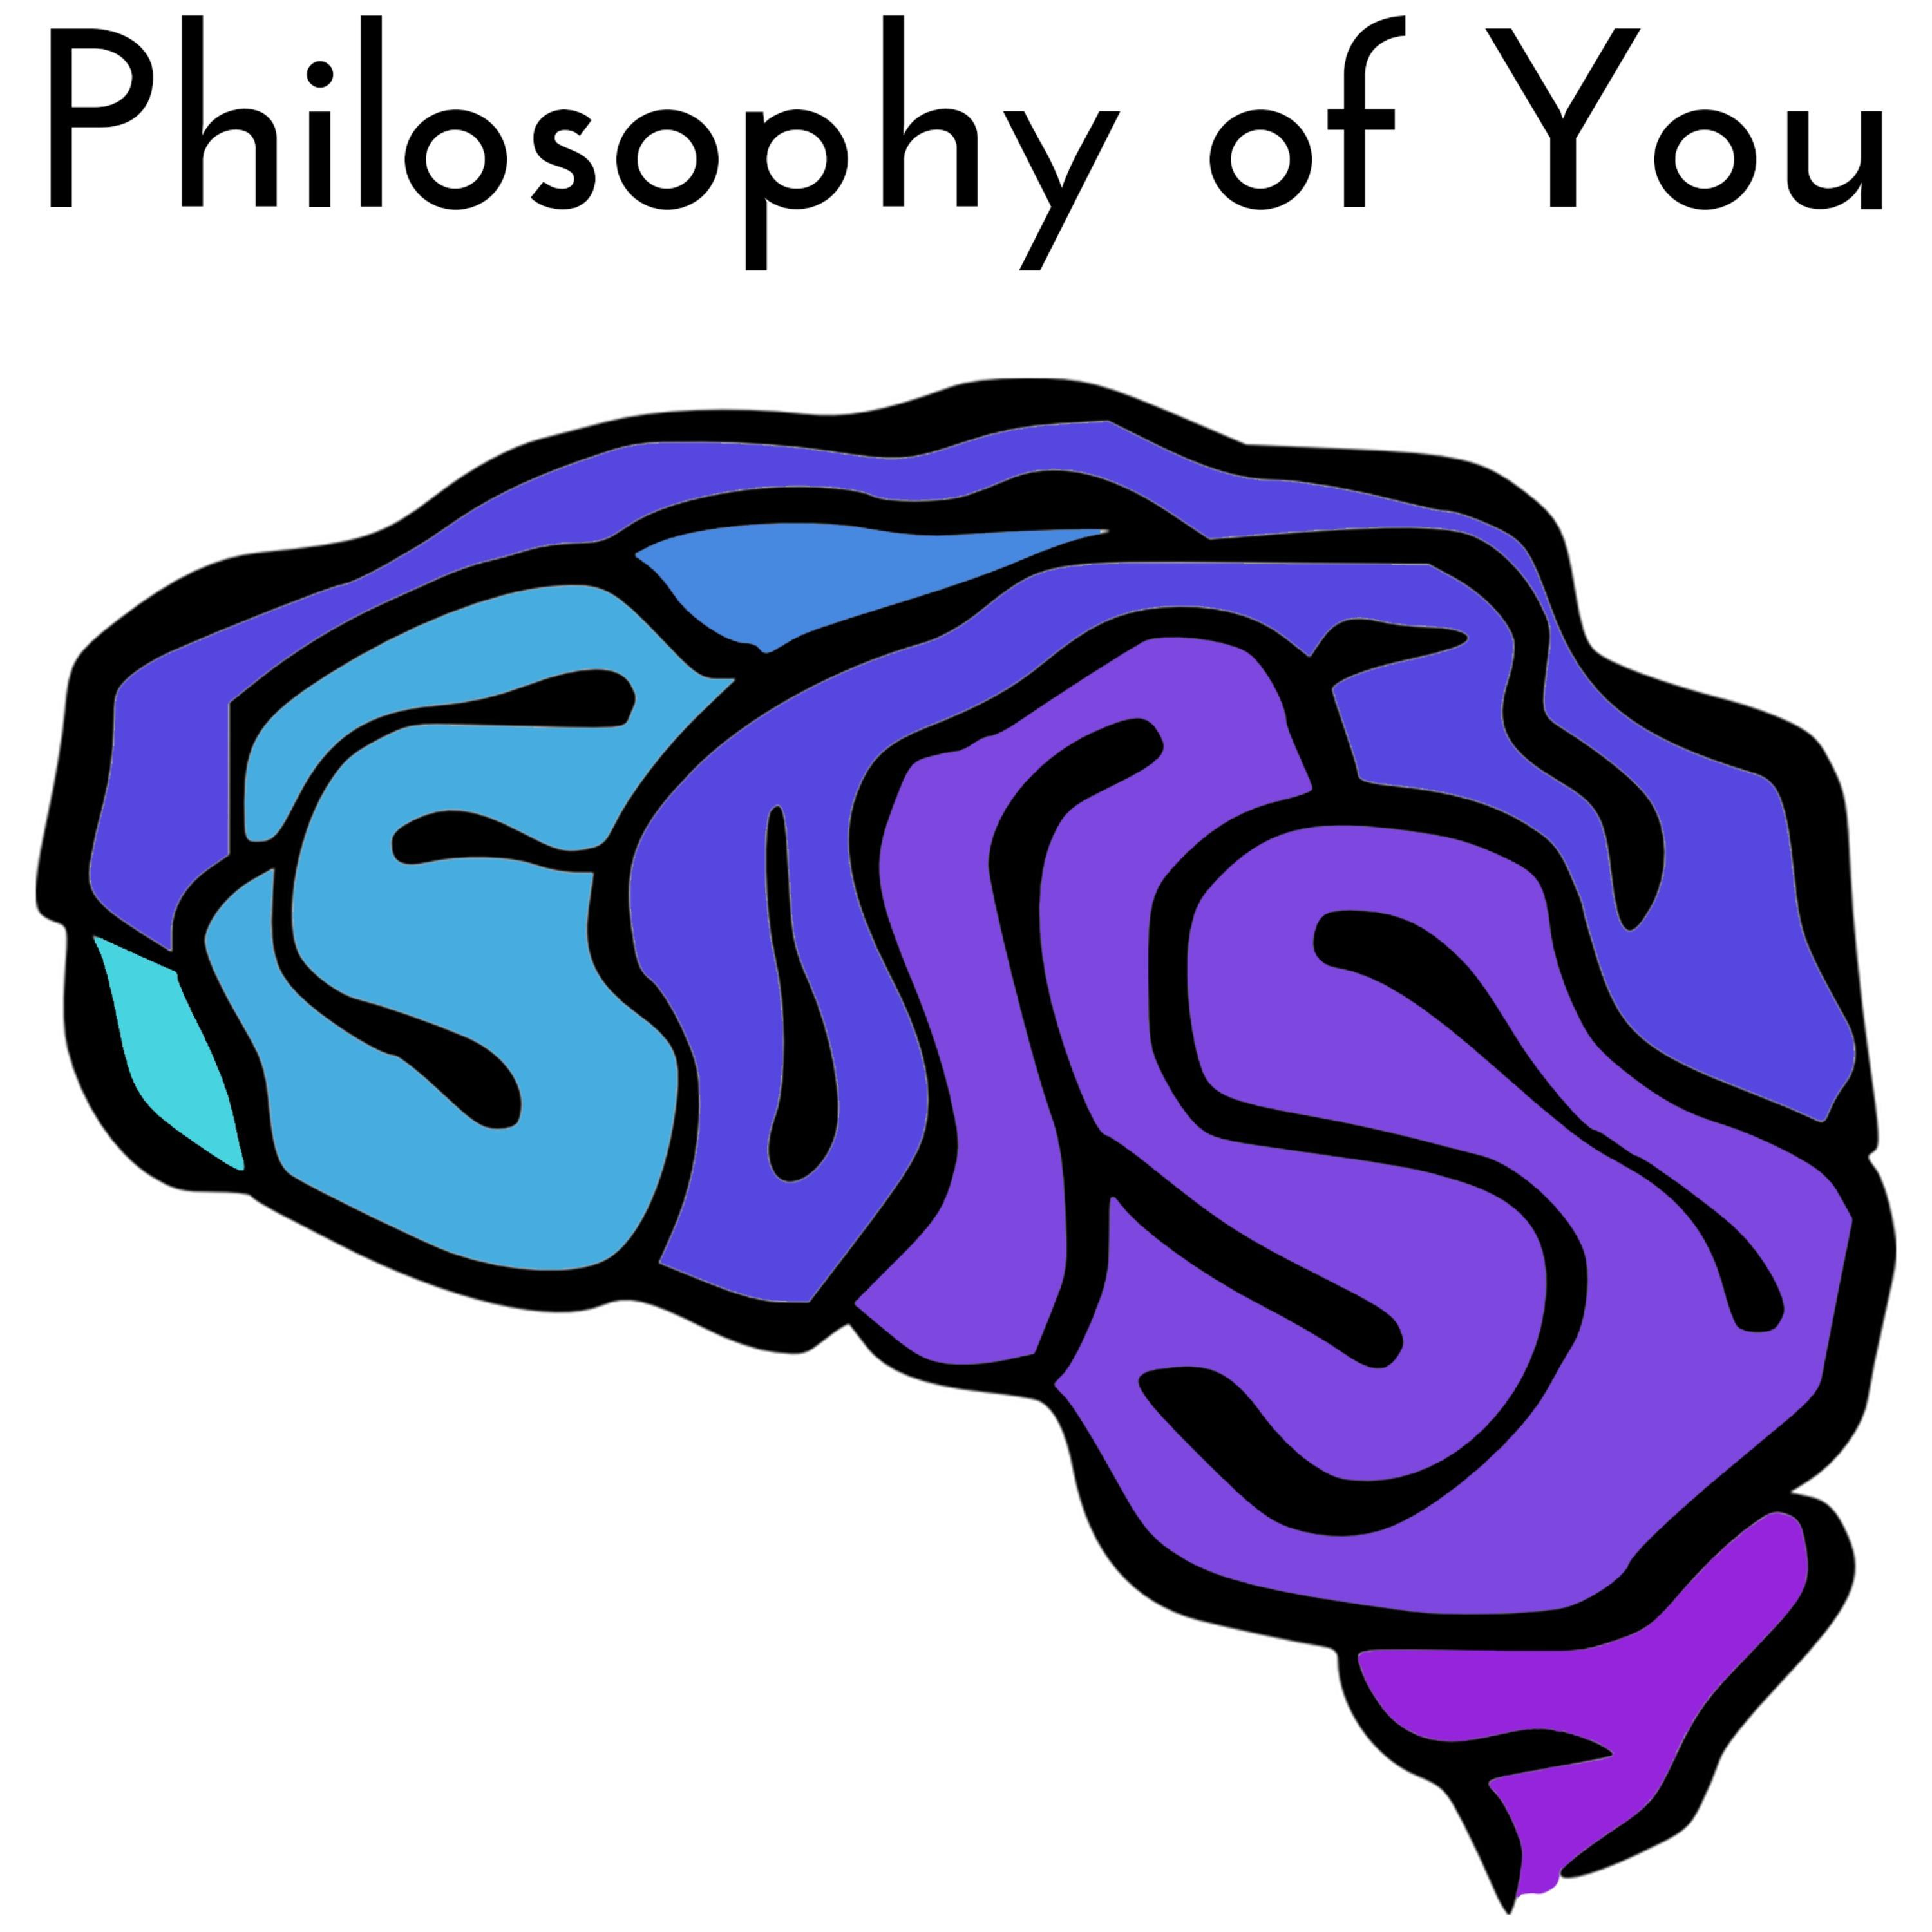 Do Not Fear Your Death - 5 Philosophers on Death | Philosophy of You Podcast #2